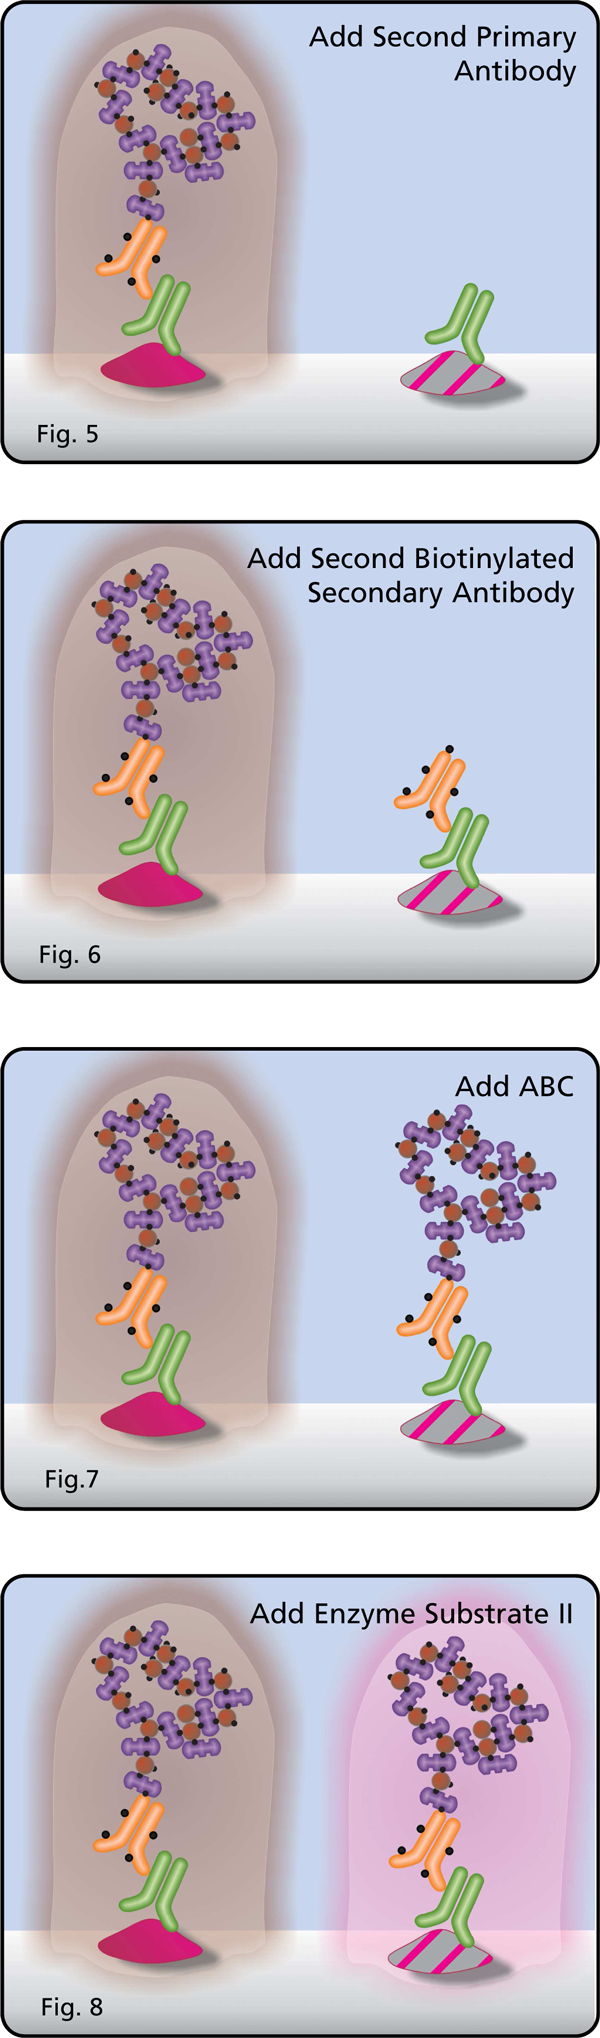 Add First Primary Antibody